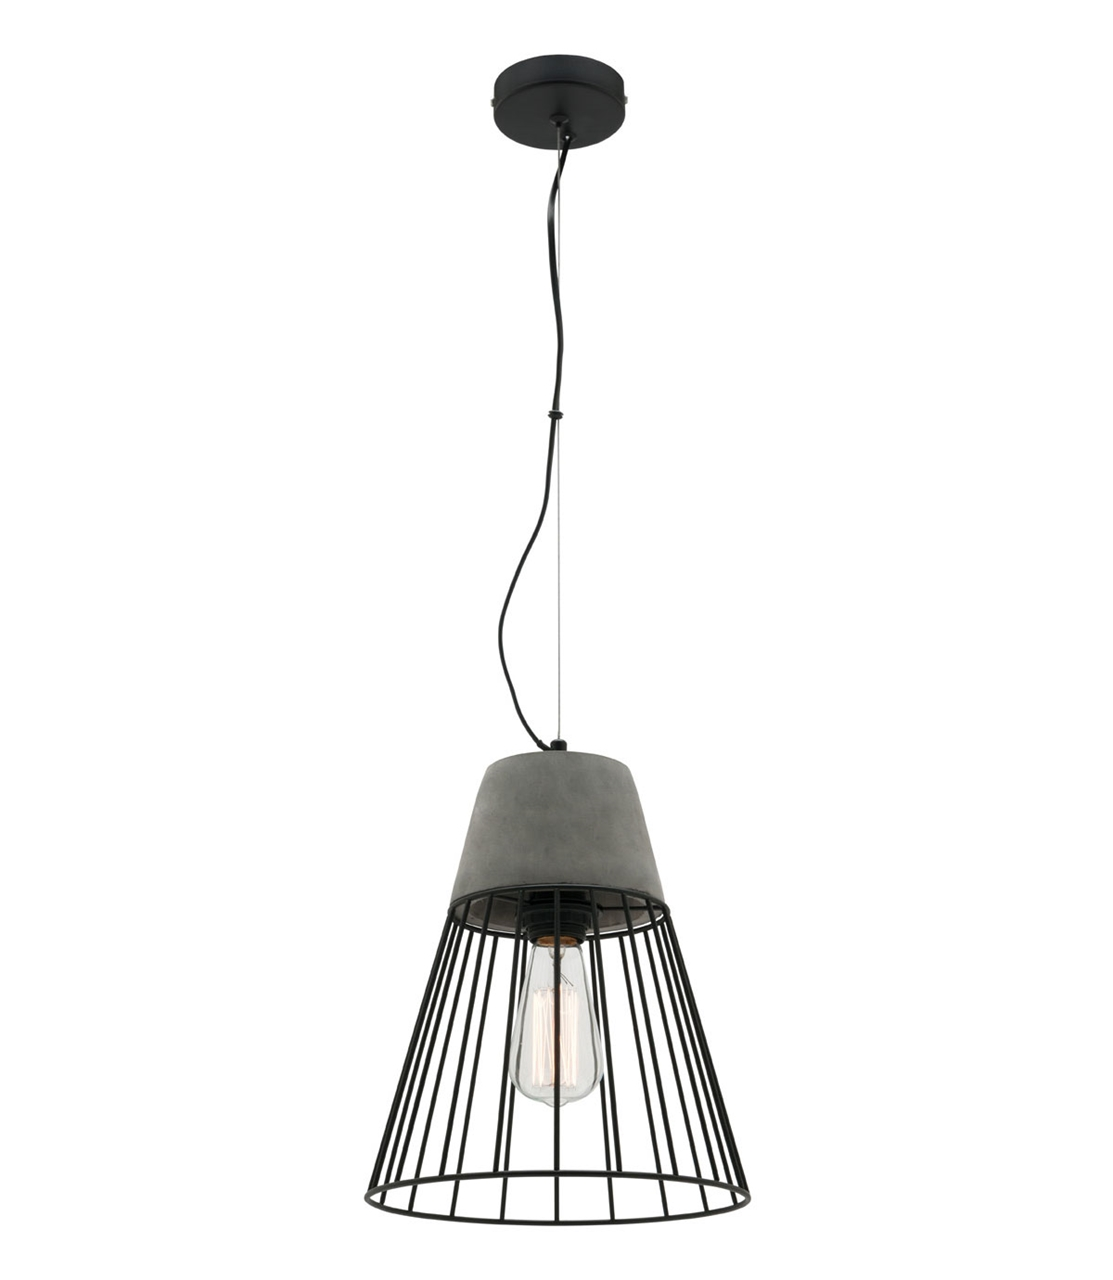 Northern lighting online shop lighting outdoor lighting light picture of toby tapered pendant mg5131 mercator lighting aloadofball Image collections